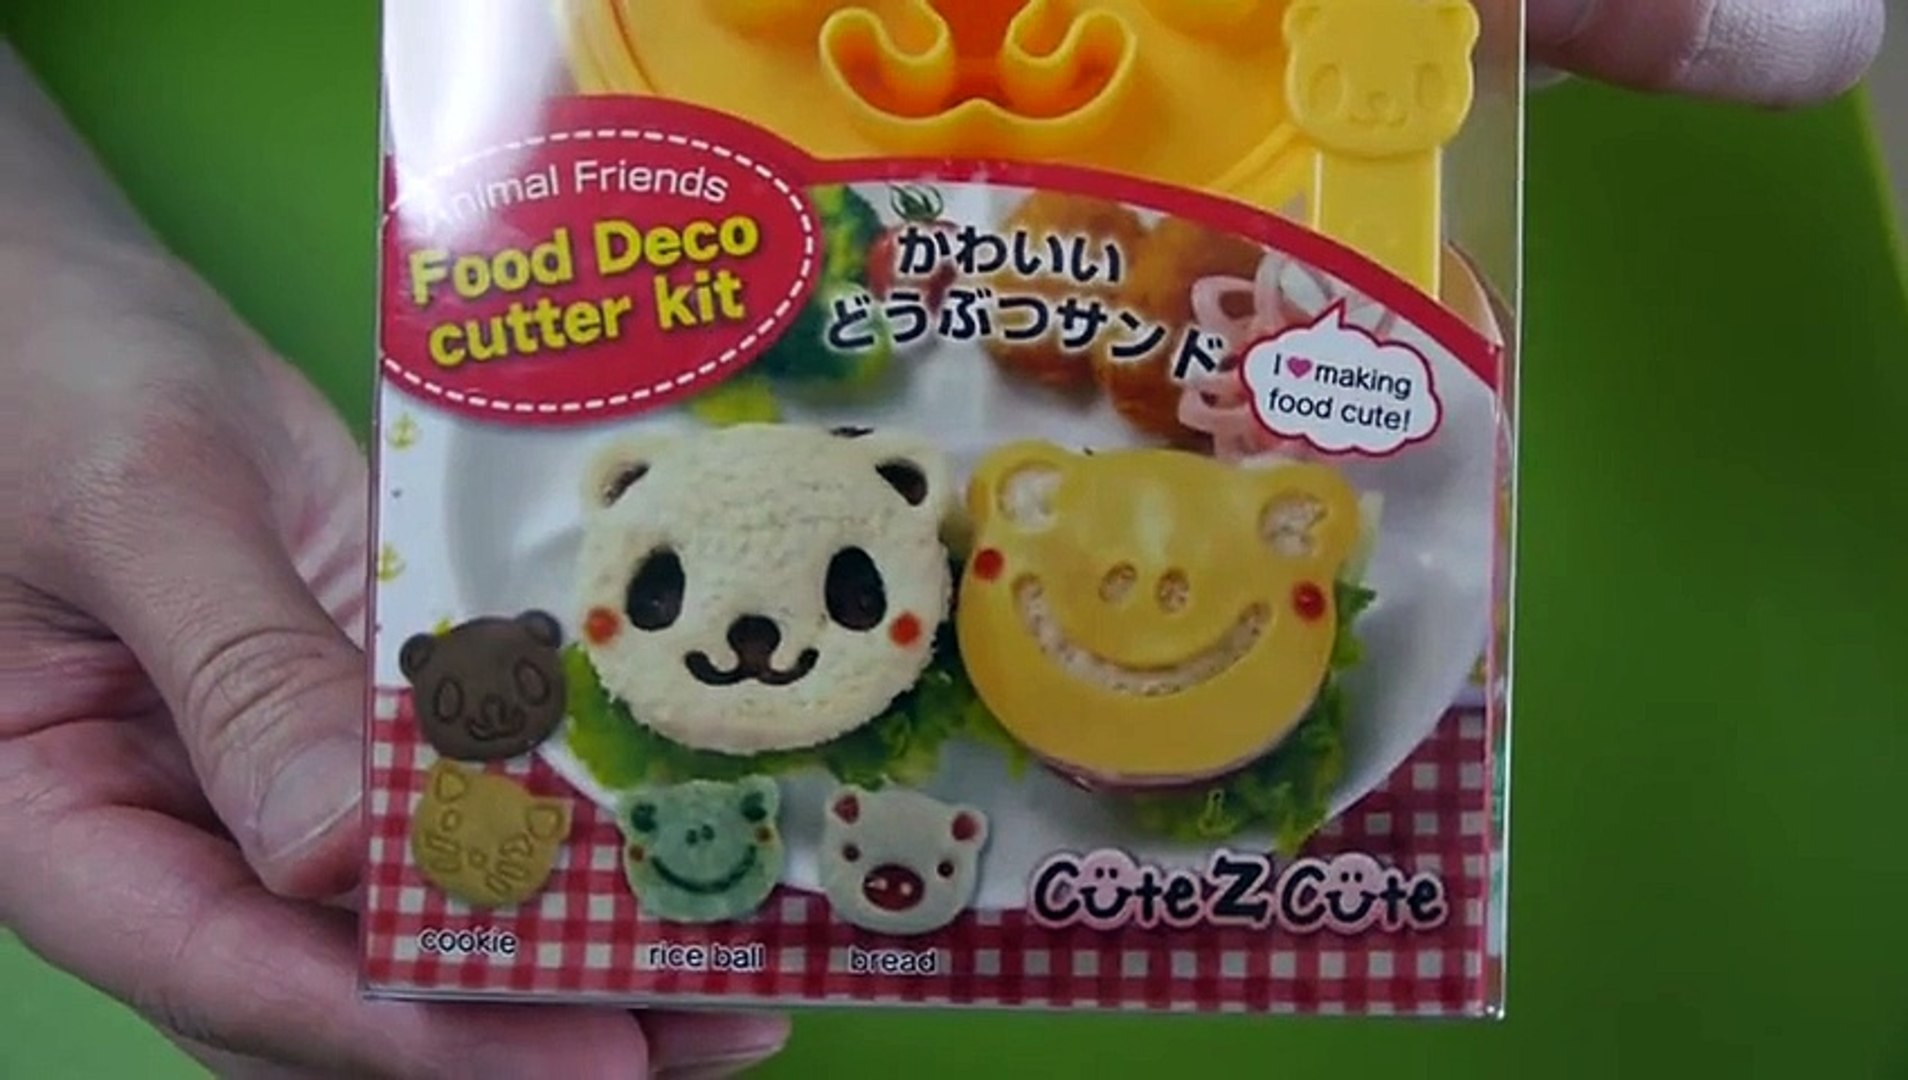 Animal Bread with ORIGAMI KABUTO - Animal Friends Food Deco Cutter Kit 動物パン 折り紙 カブト